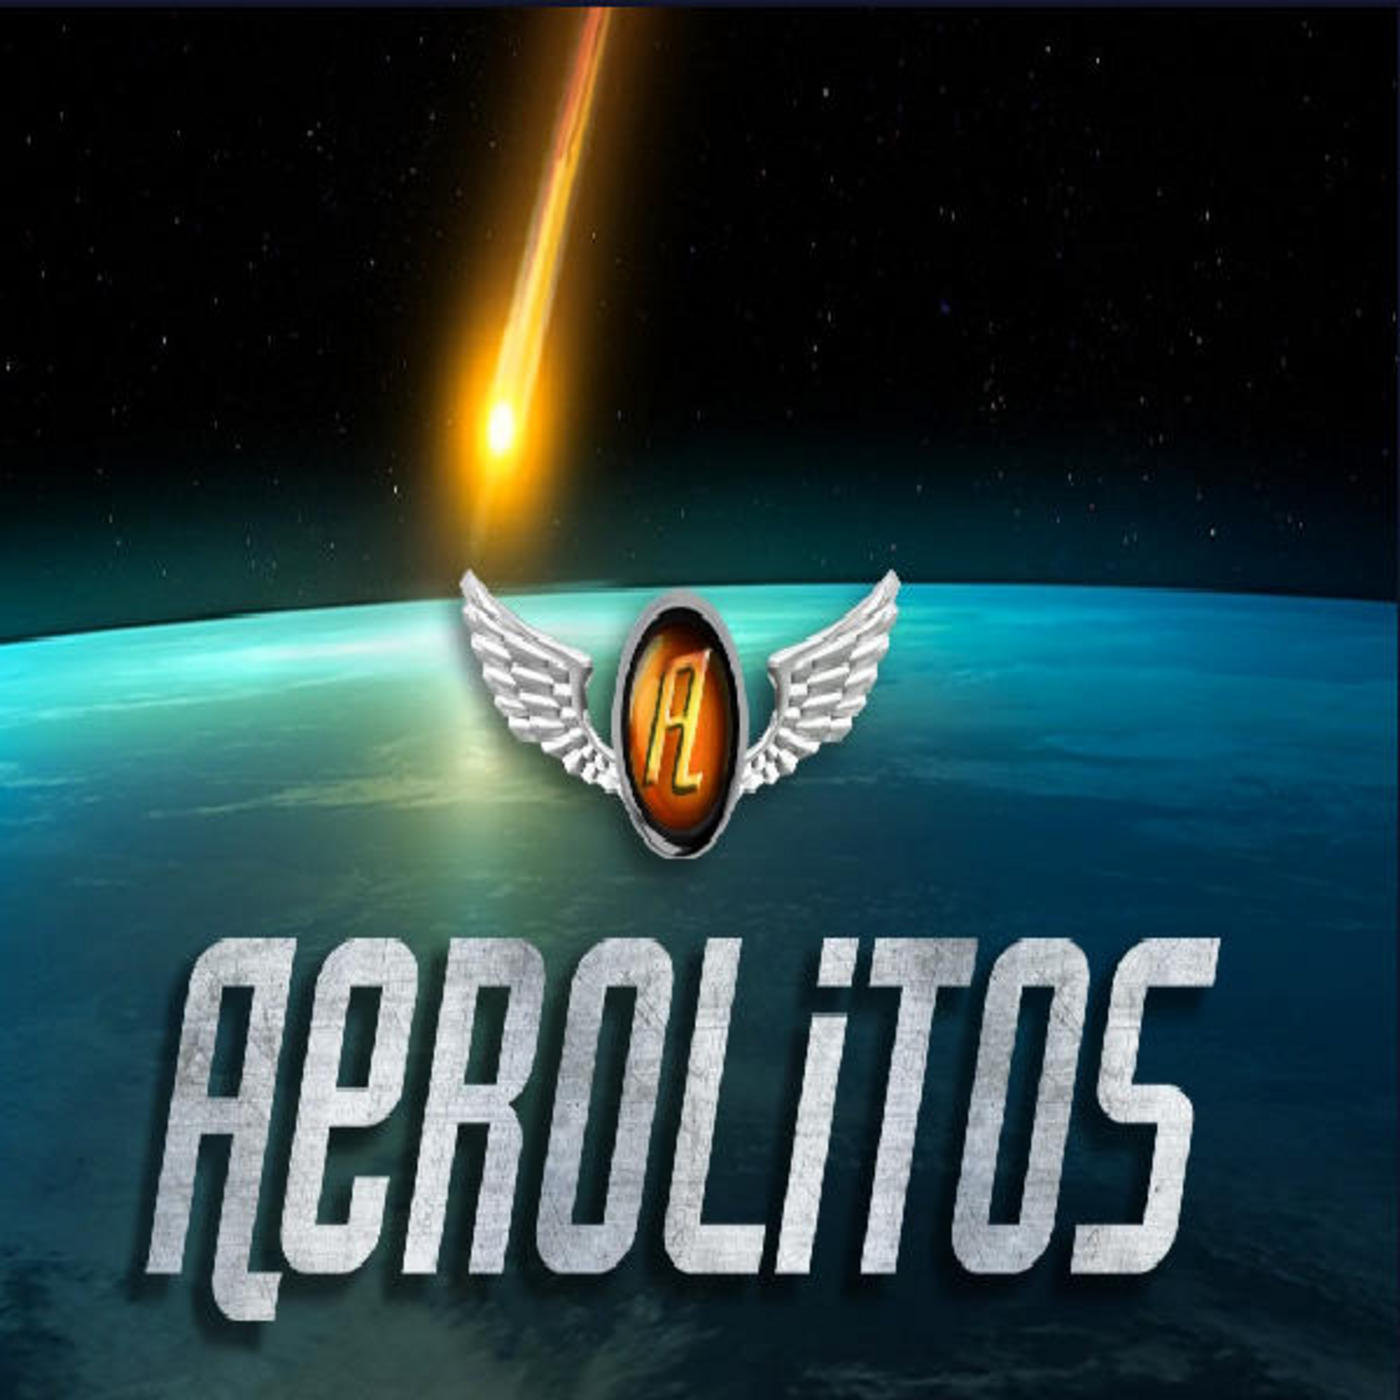 Aerolitos Podcast #012 – A Máfia